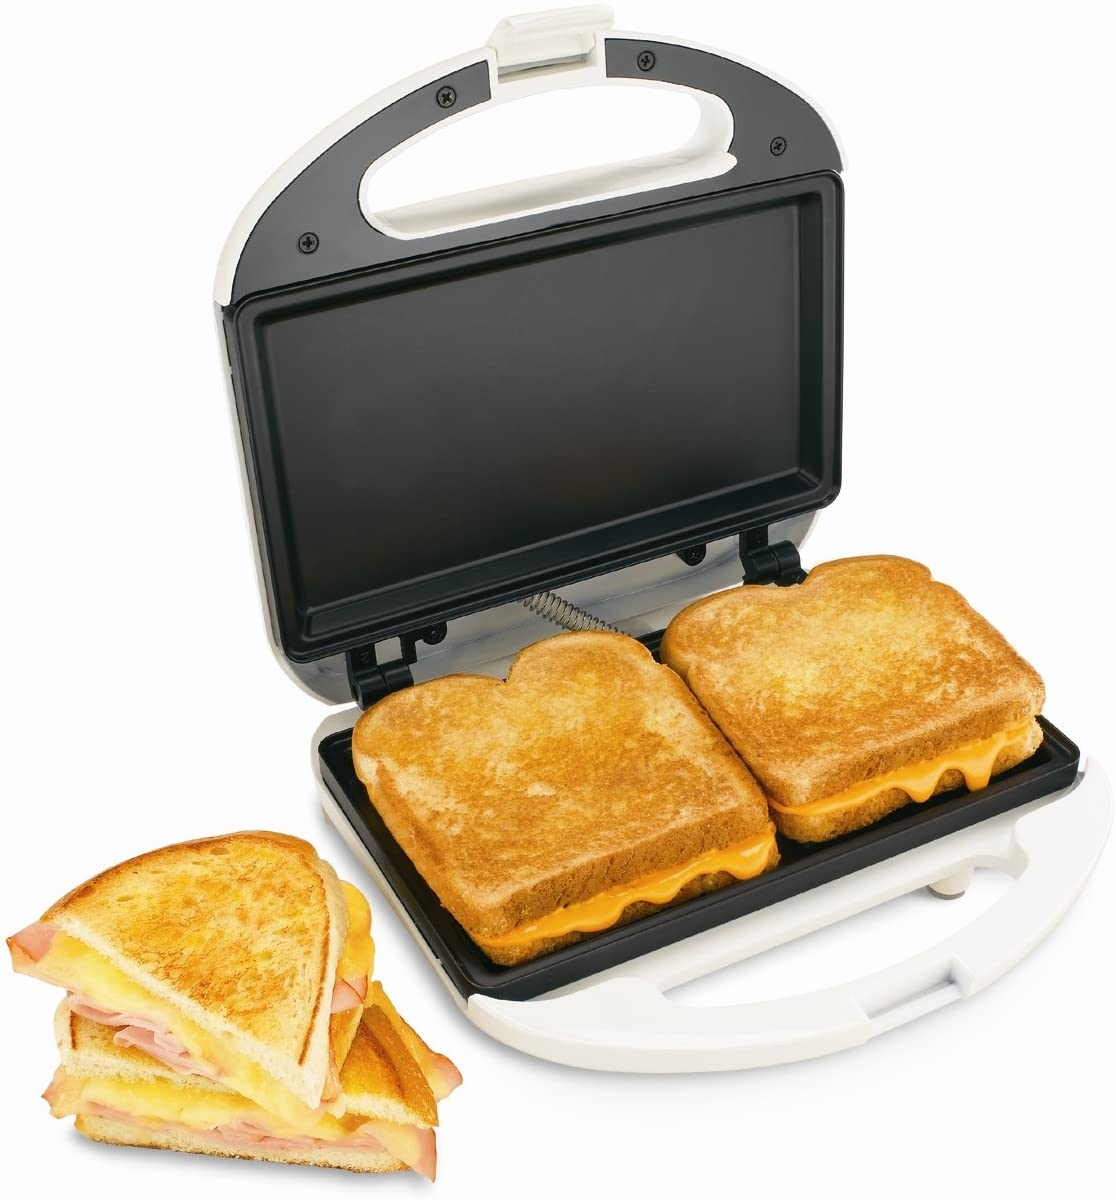 Sandwich Maker Black Friday Deals